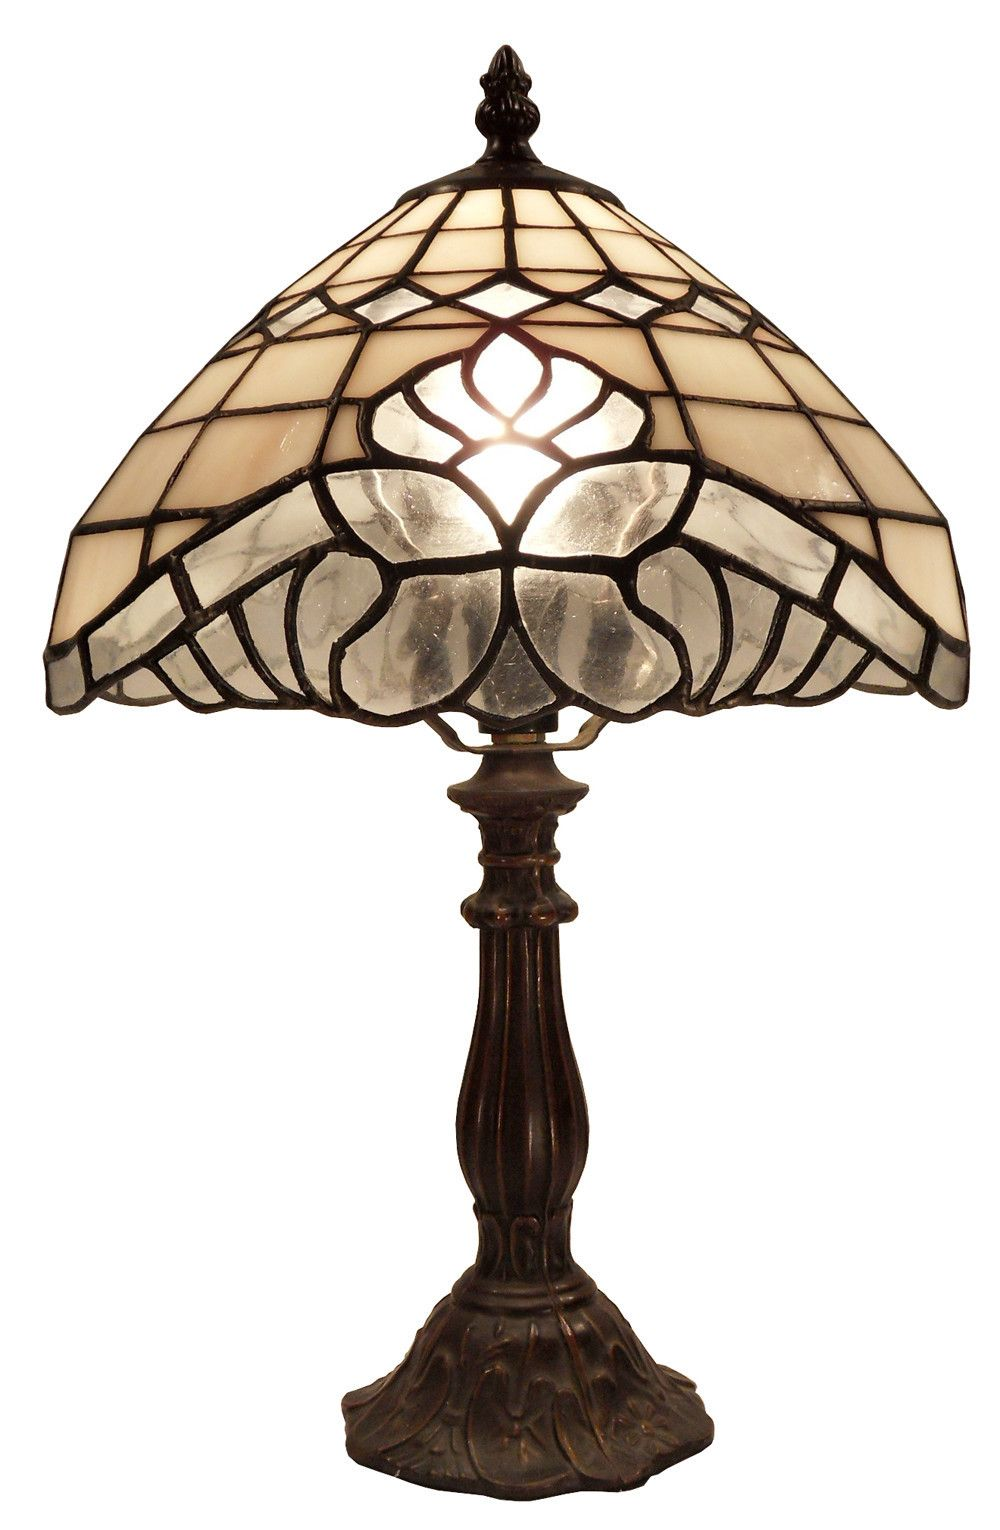 Vienna Tiffany Table Lamp Tiffany Table Lamps Table Lamp Wood